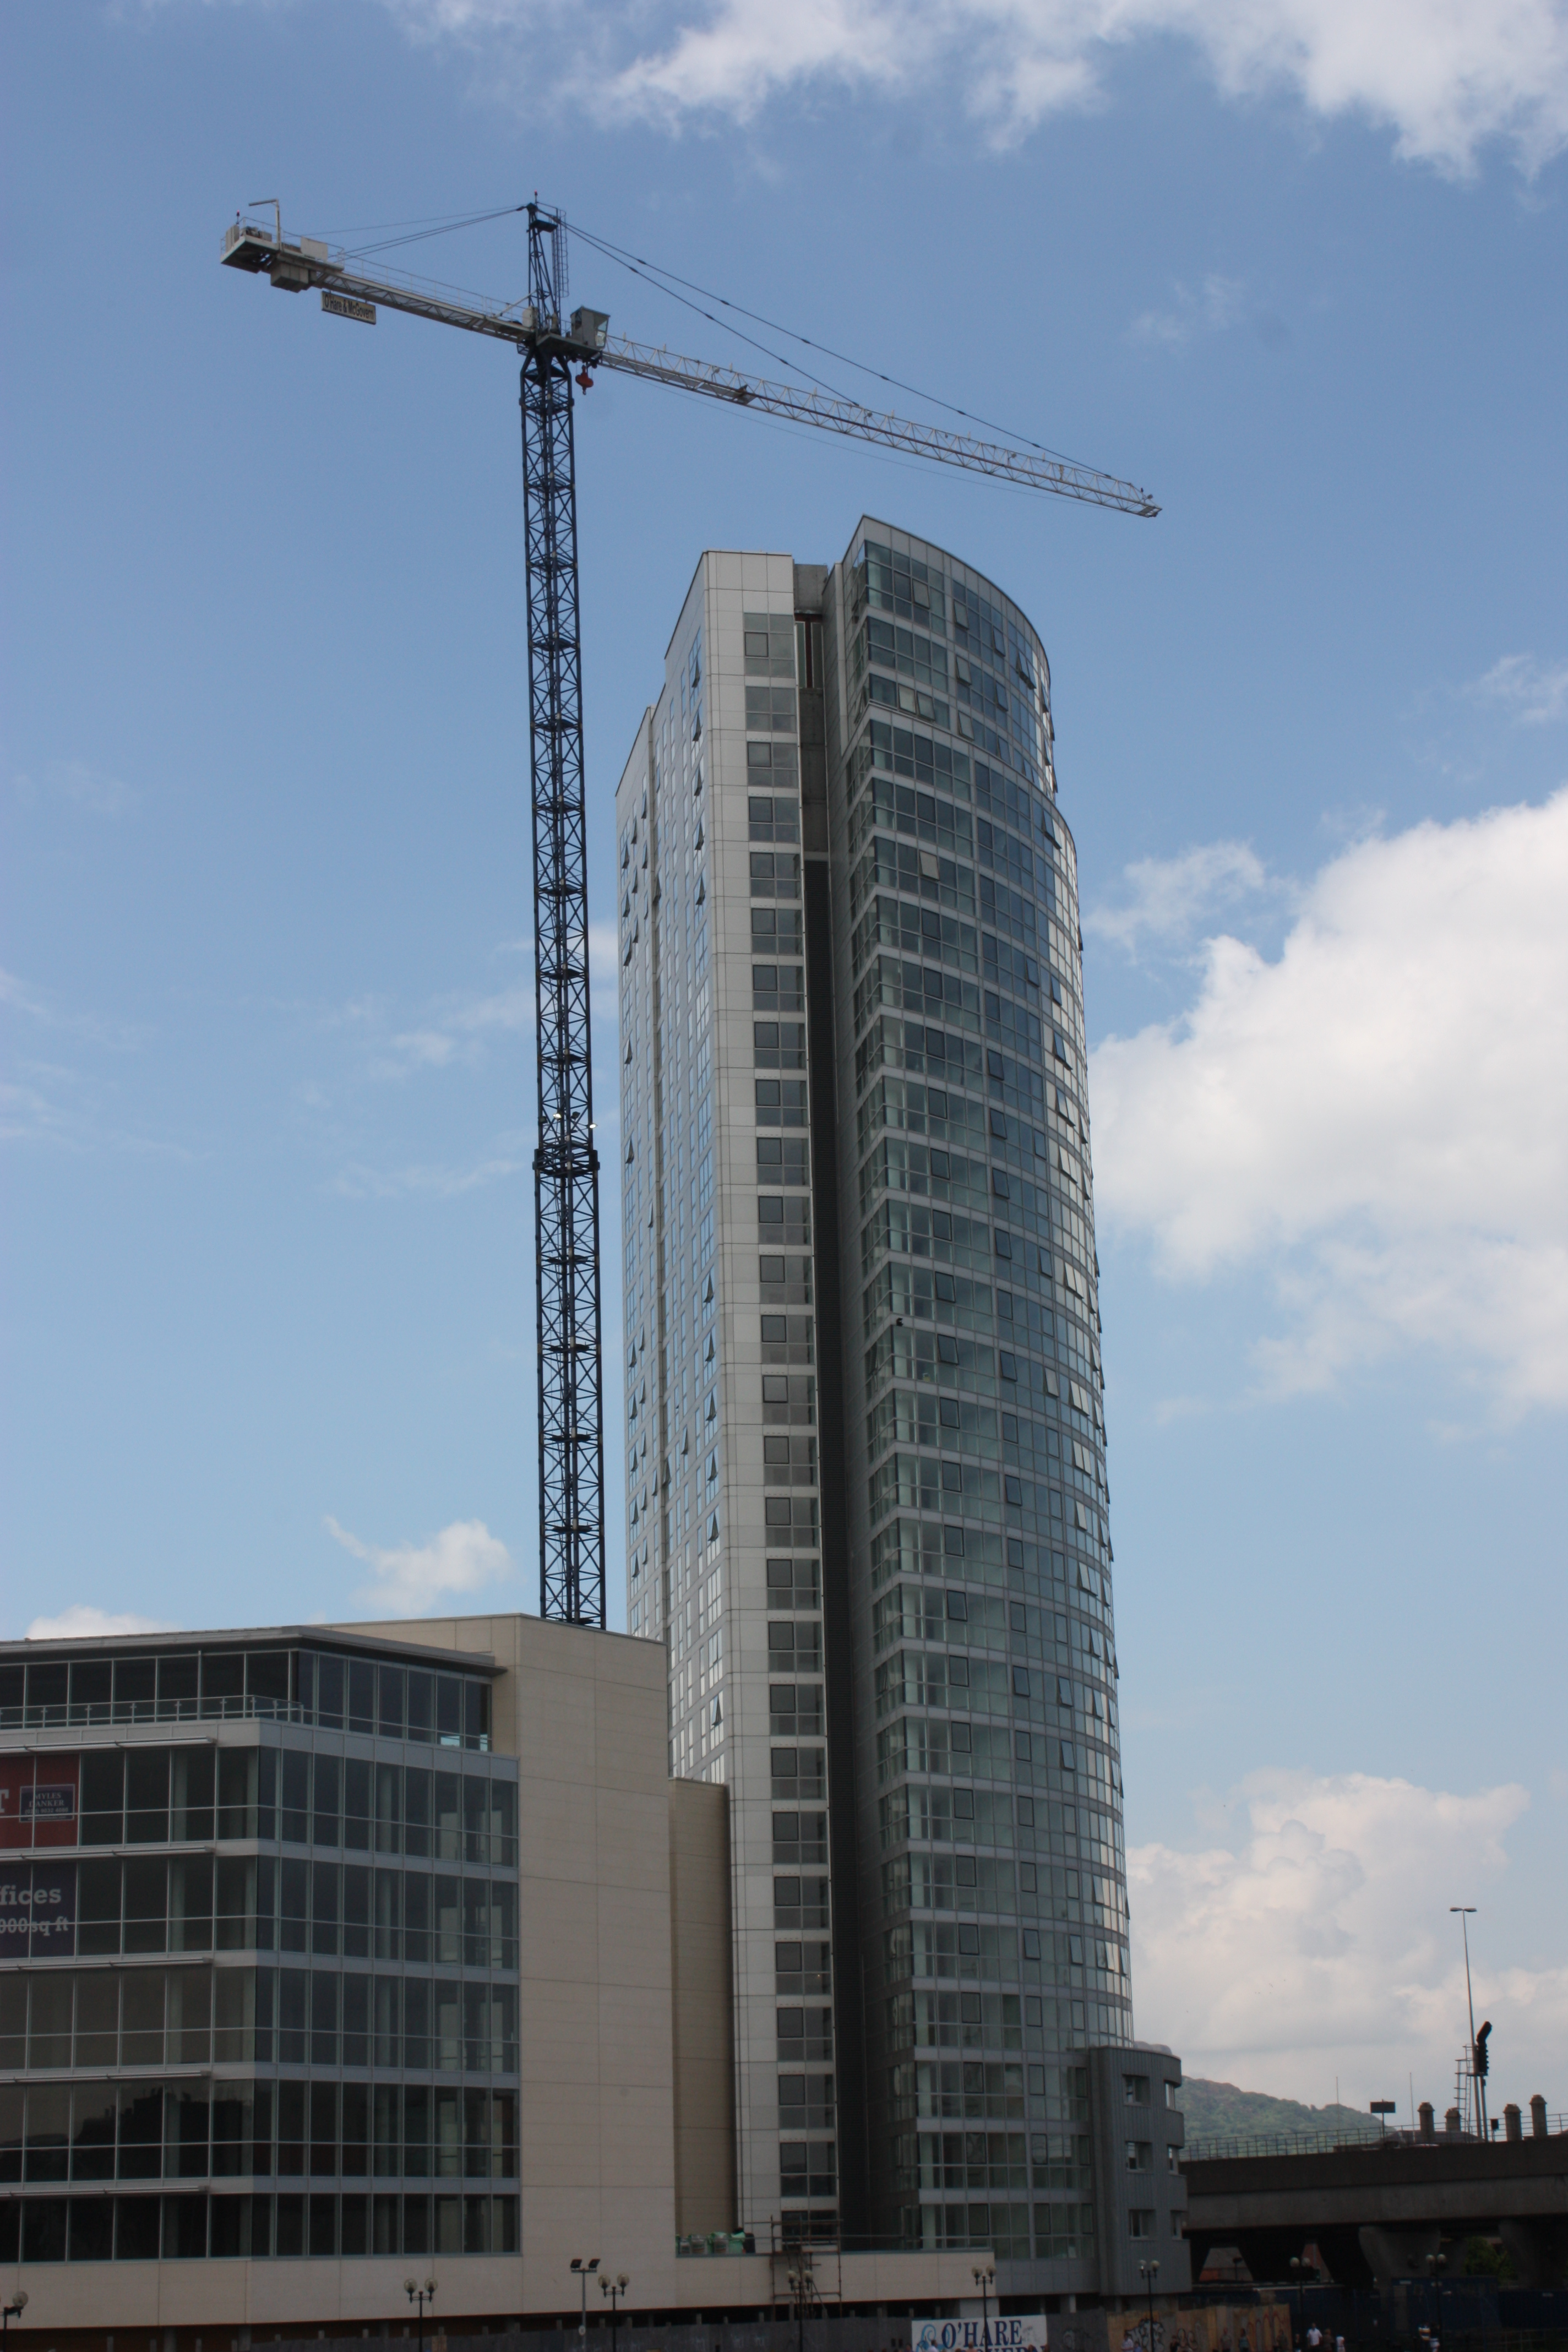 Obel Tower